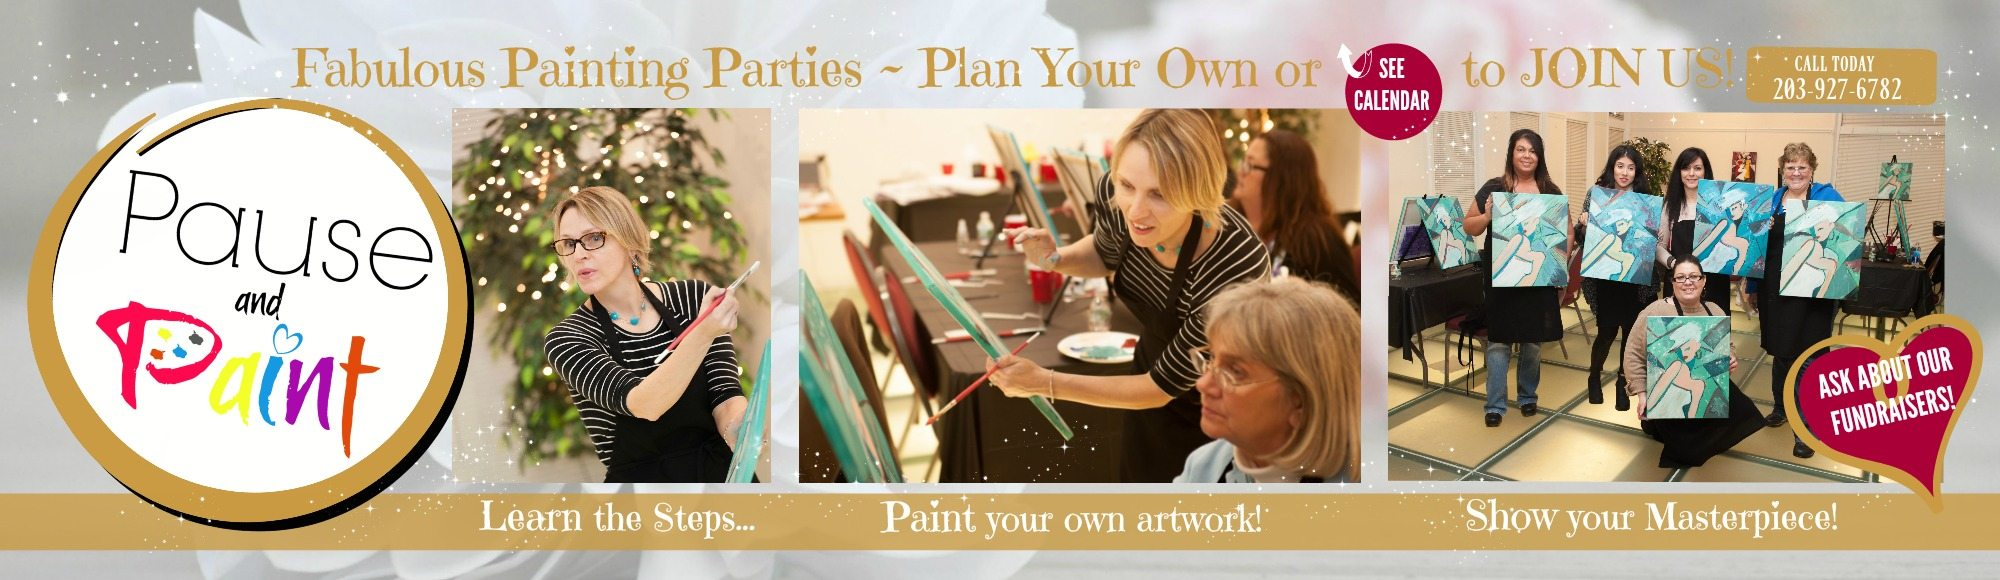 Pause and Paint - Brush off Stress